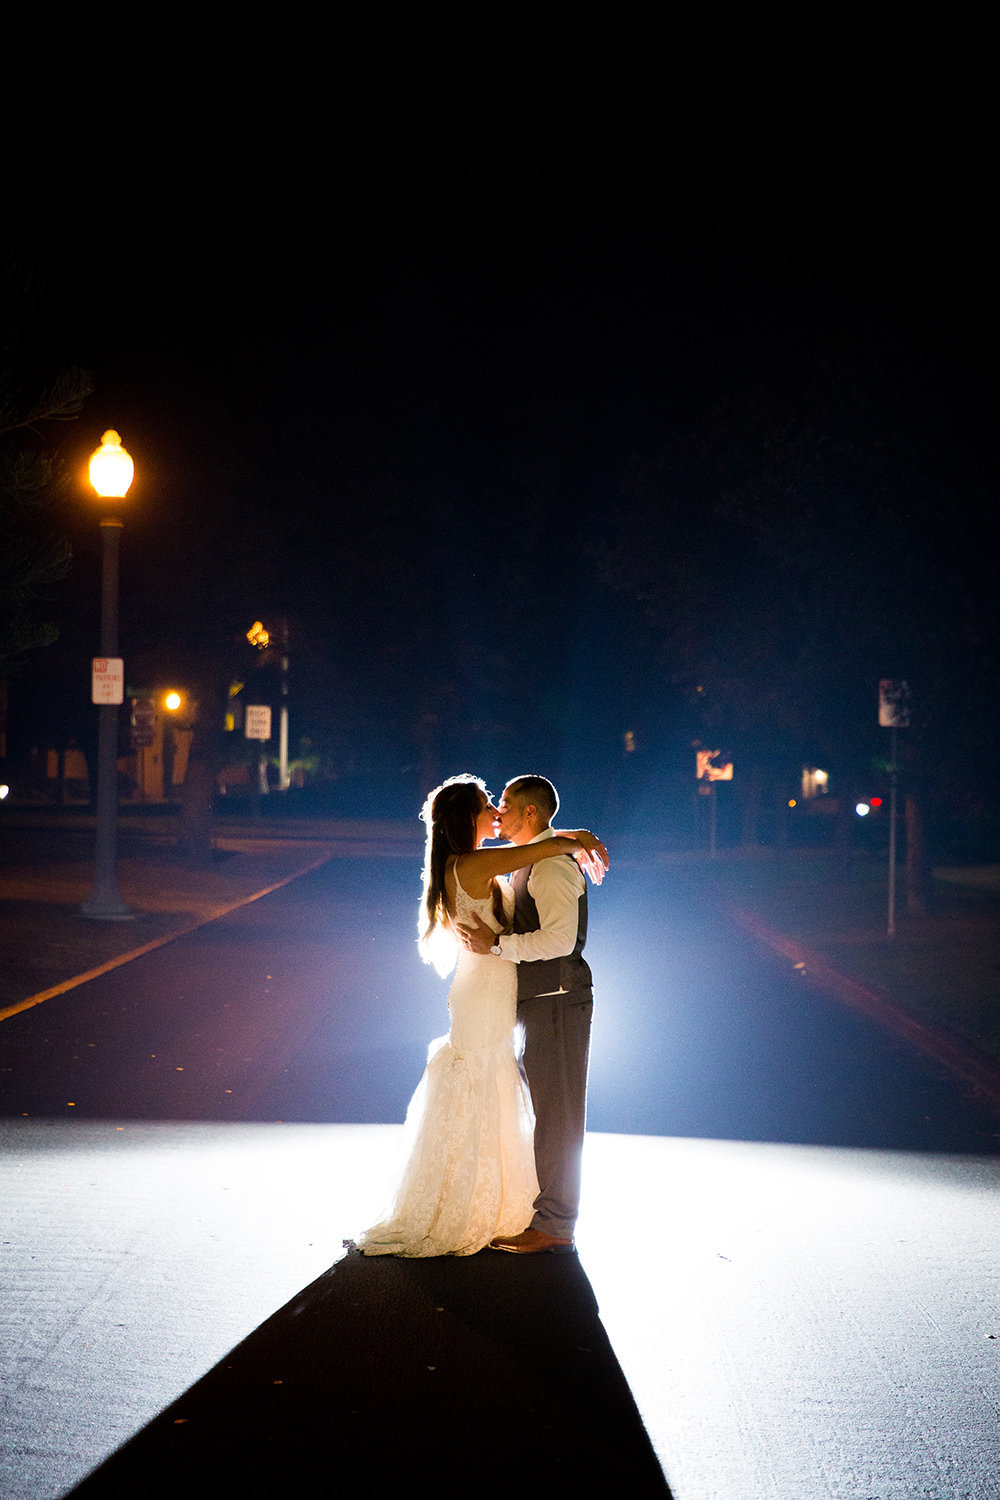 stunning night image with bride and groom at brick